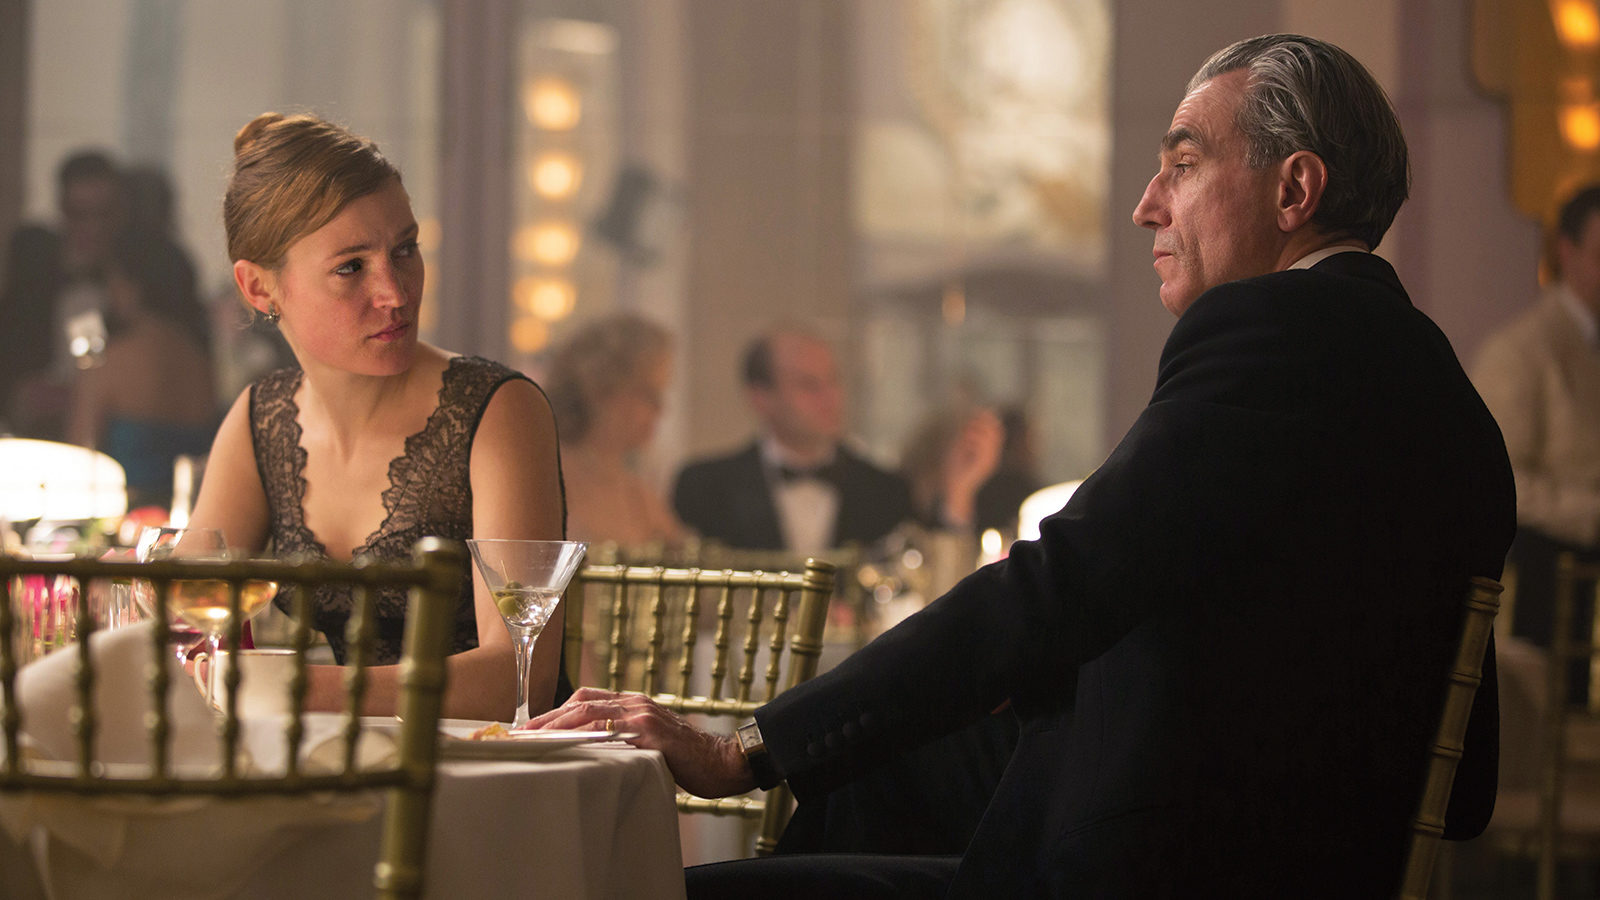 A scene from Phantom Thread © 2017 Focus Features, LLC.